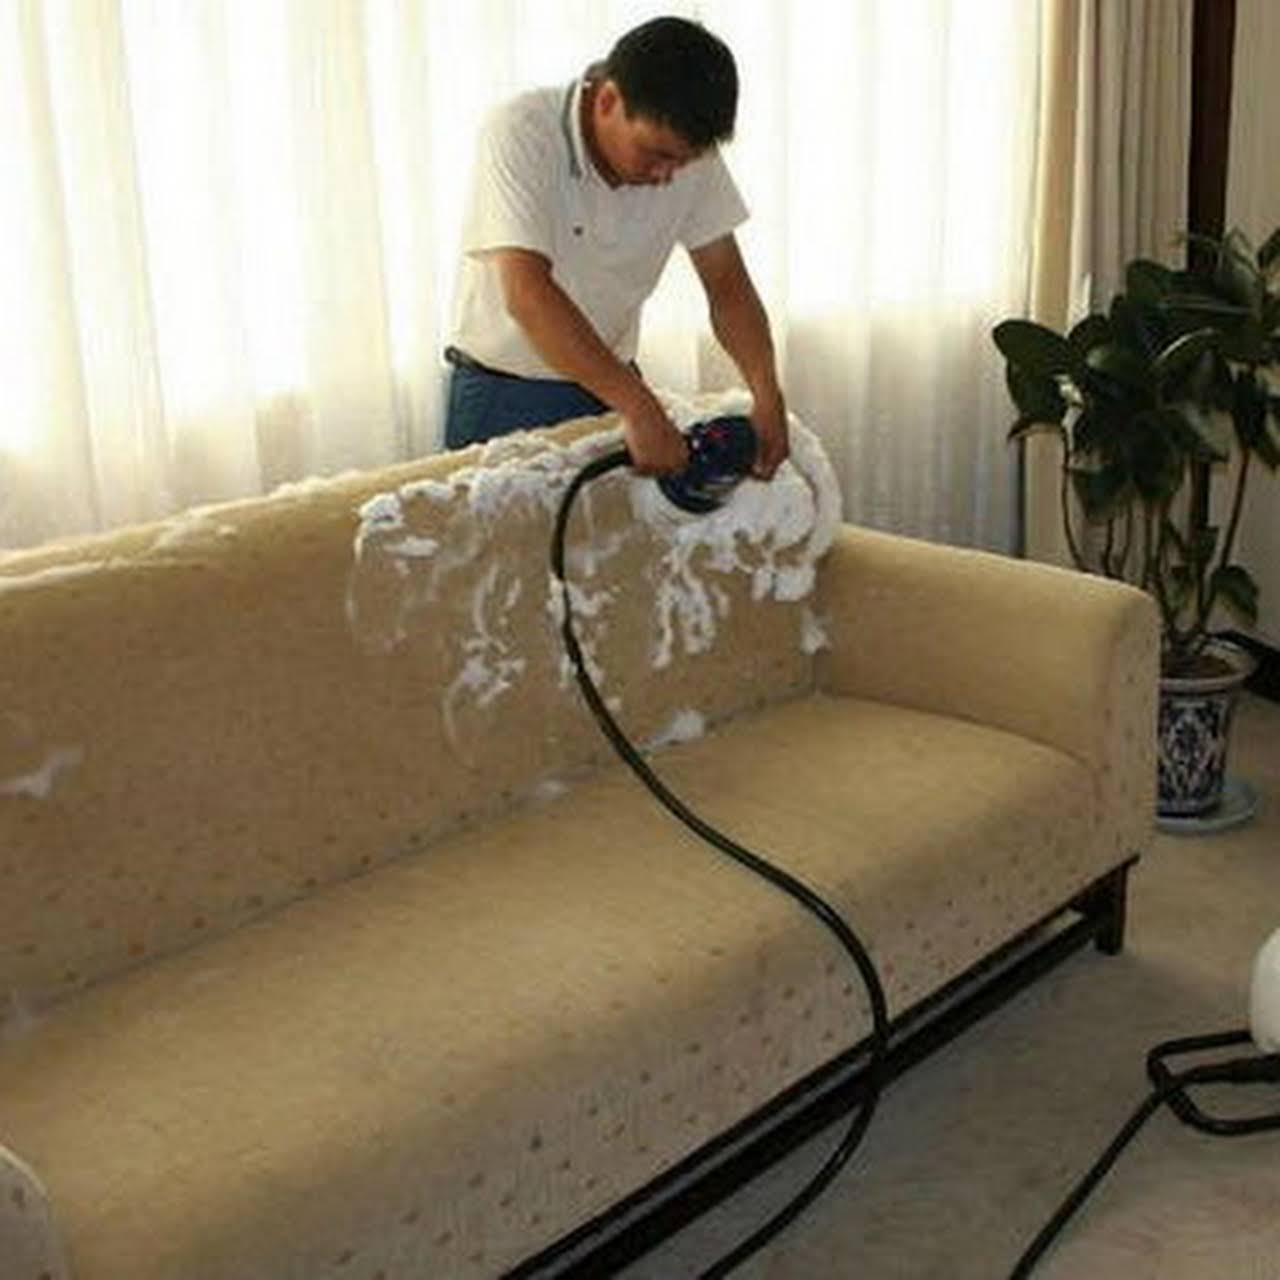 Get Up To 20 Off On Sofa Dry Cleaning Services